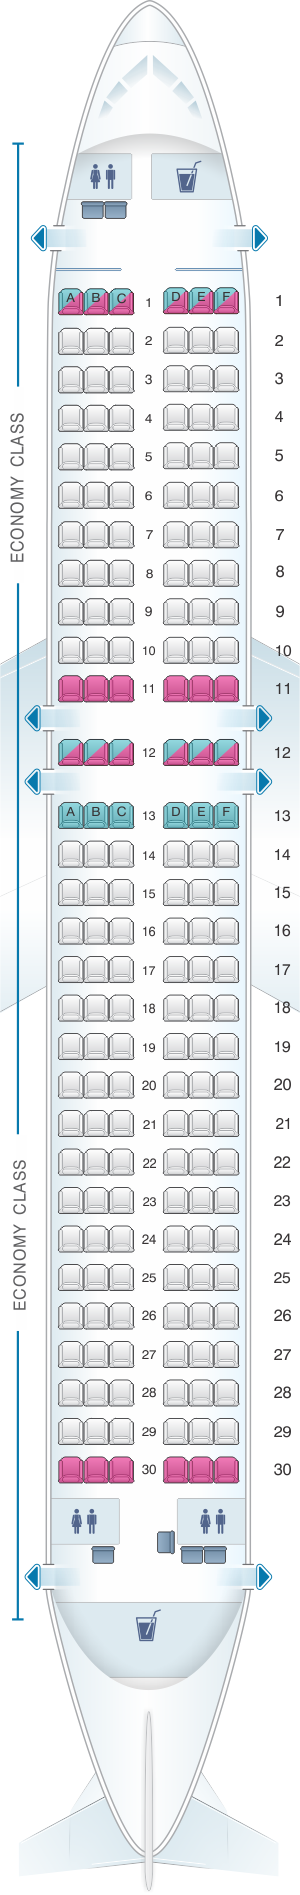 Seat map for SmartLynx Airbus A320 200 - 180 PAX